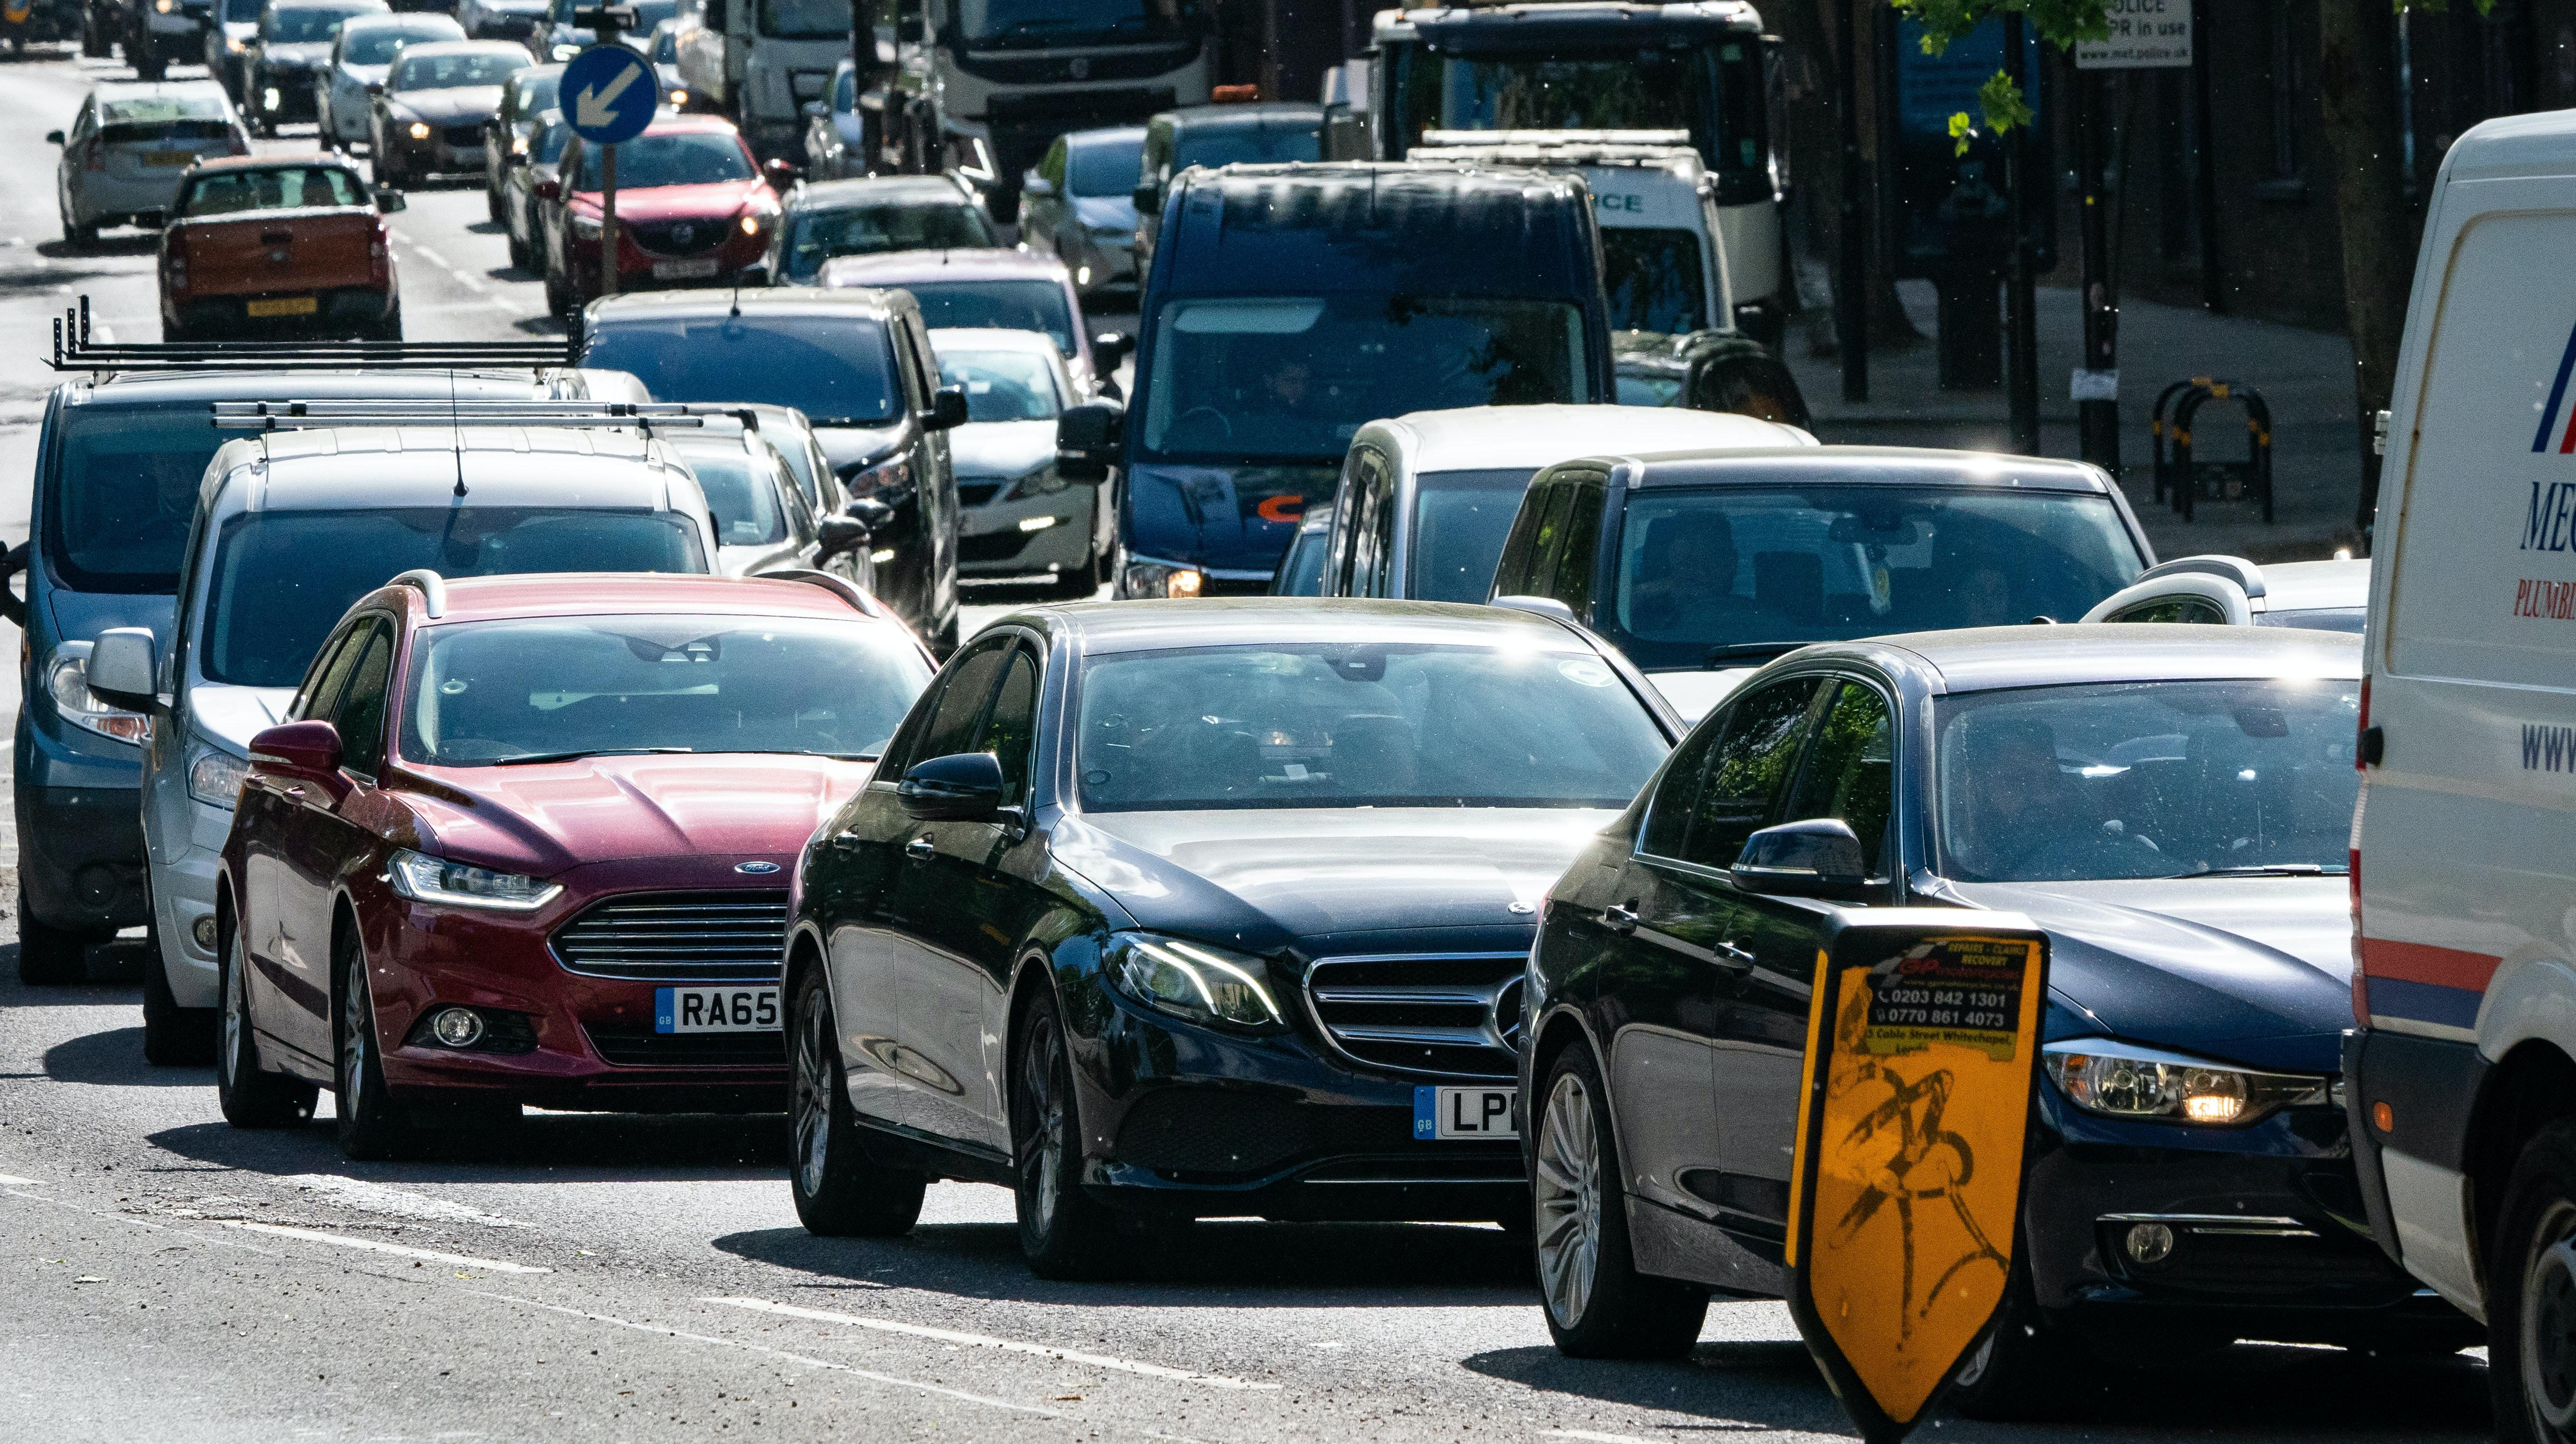 Drivers say virus crisis has made car access more important, survey finds